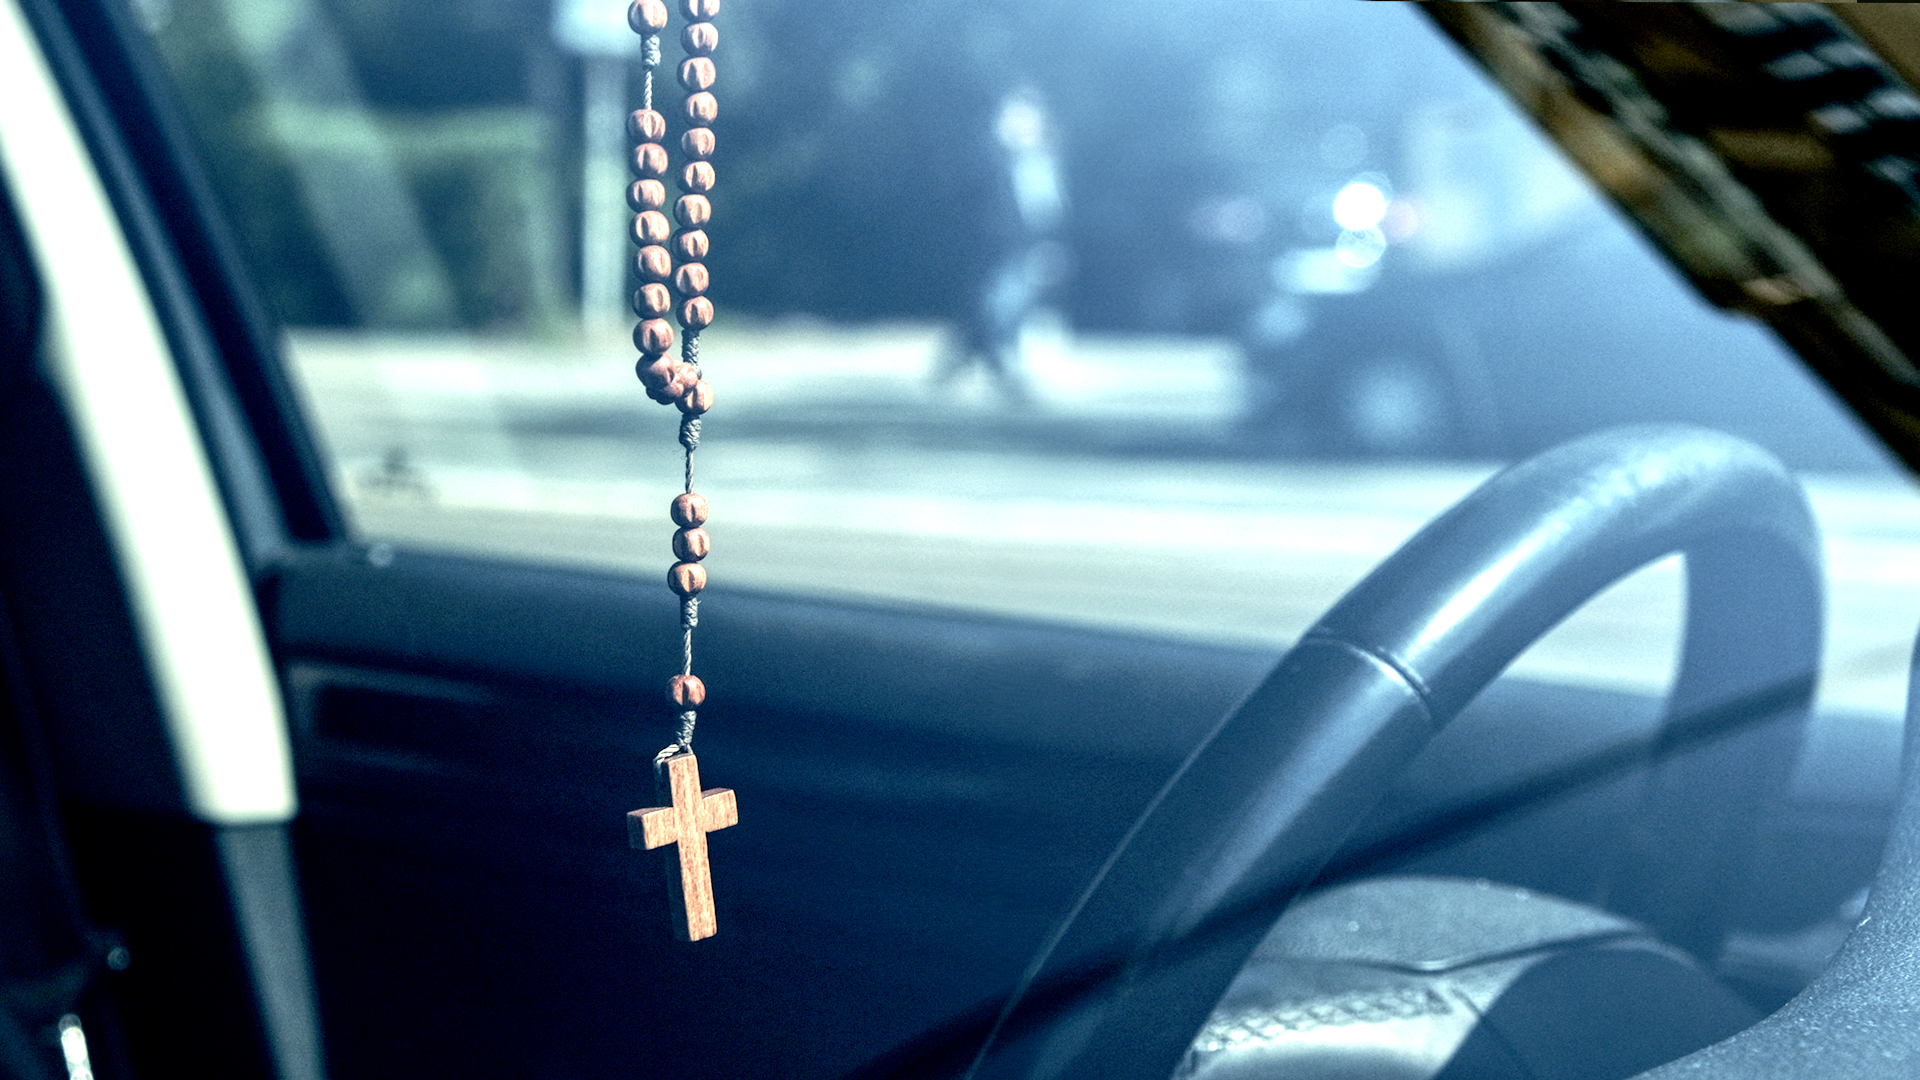 Fetishes are objects used to protect us - like this cross hanging from the rear-view mirror of a car